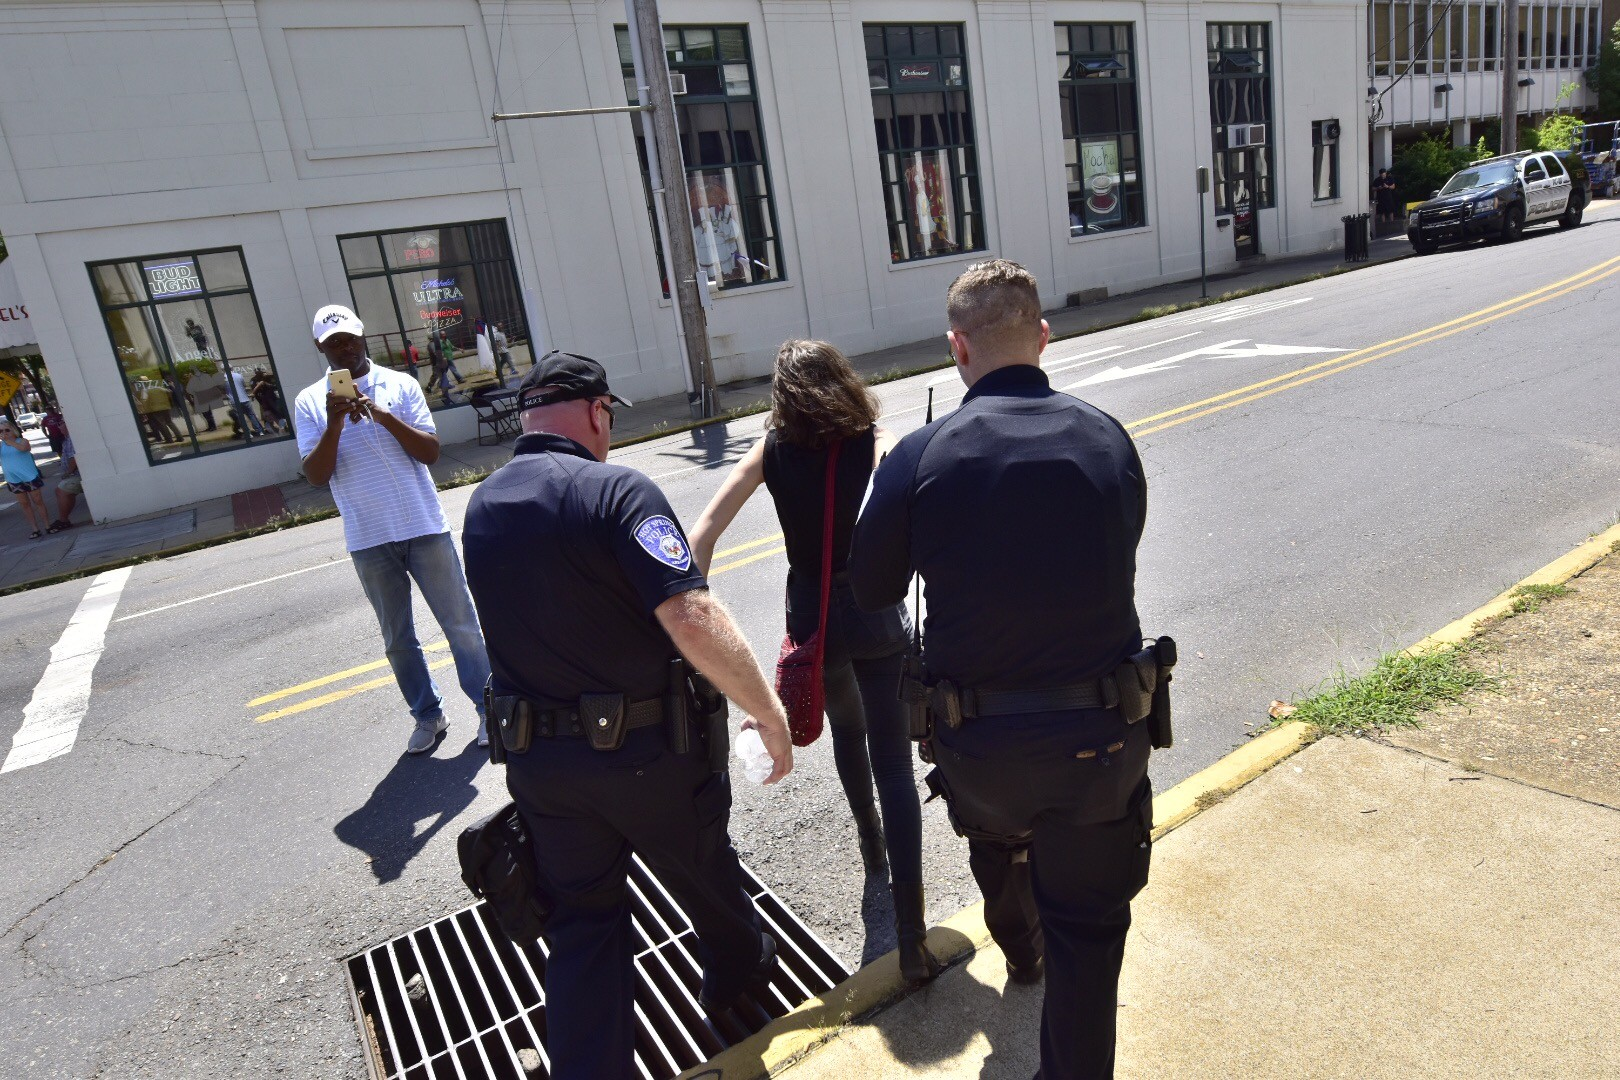 Confederate rally in Hot Springs largely peaceful, met by